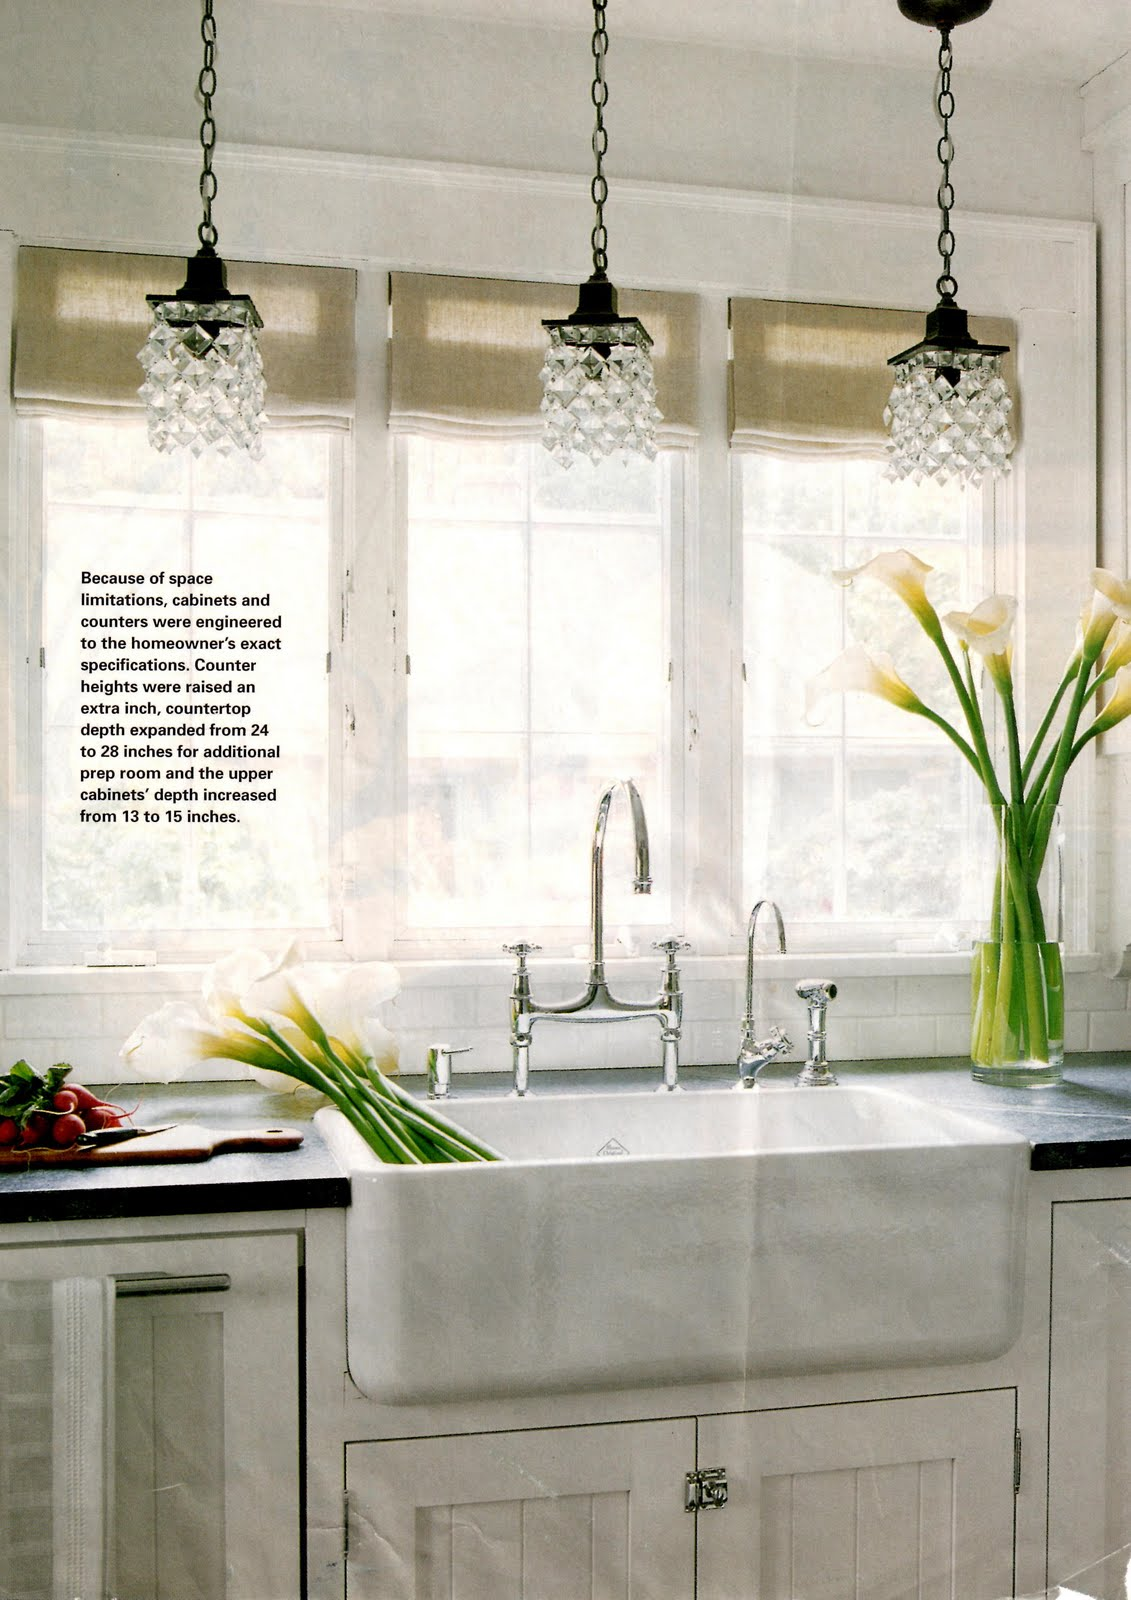 Kitchen Sink Pendant Light Ikea Cabinets Cost Estimate I Like How They Paired The Pendants With A Different But